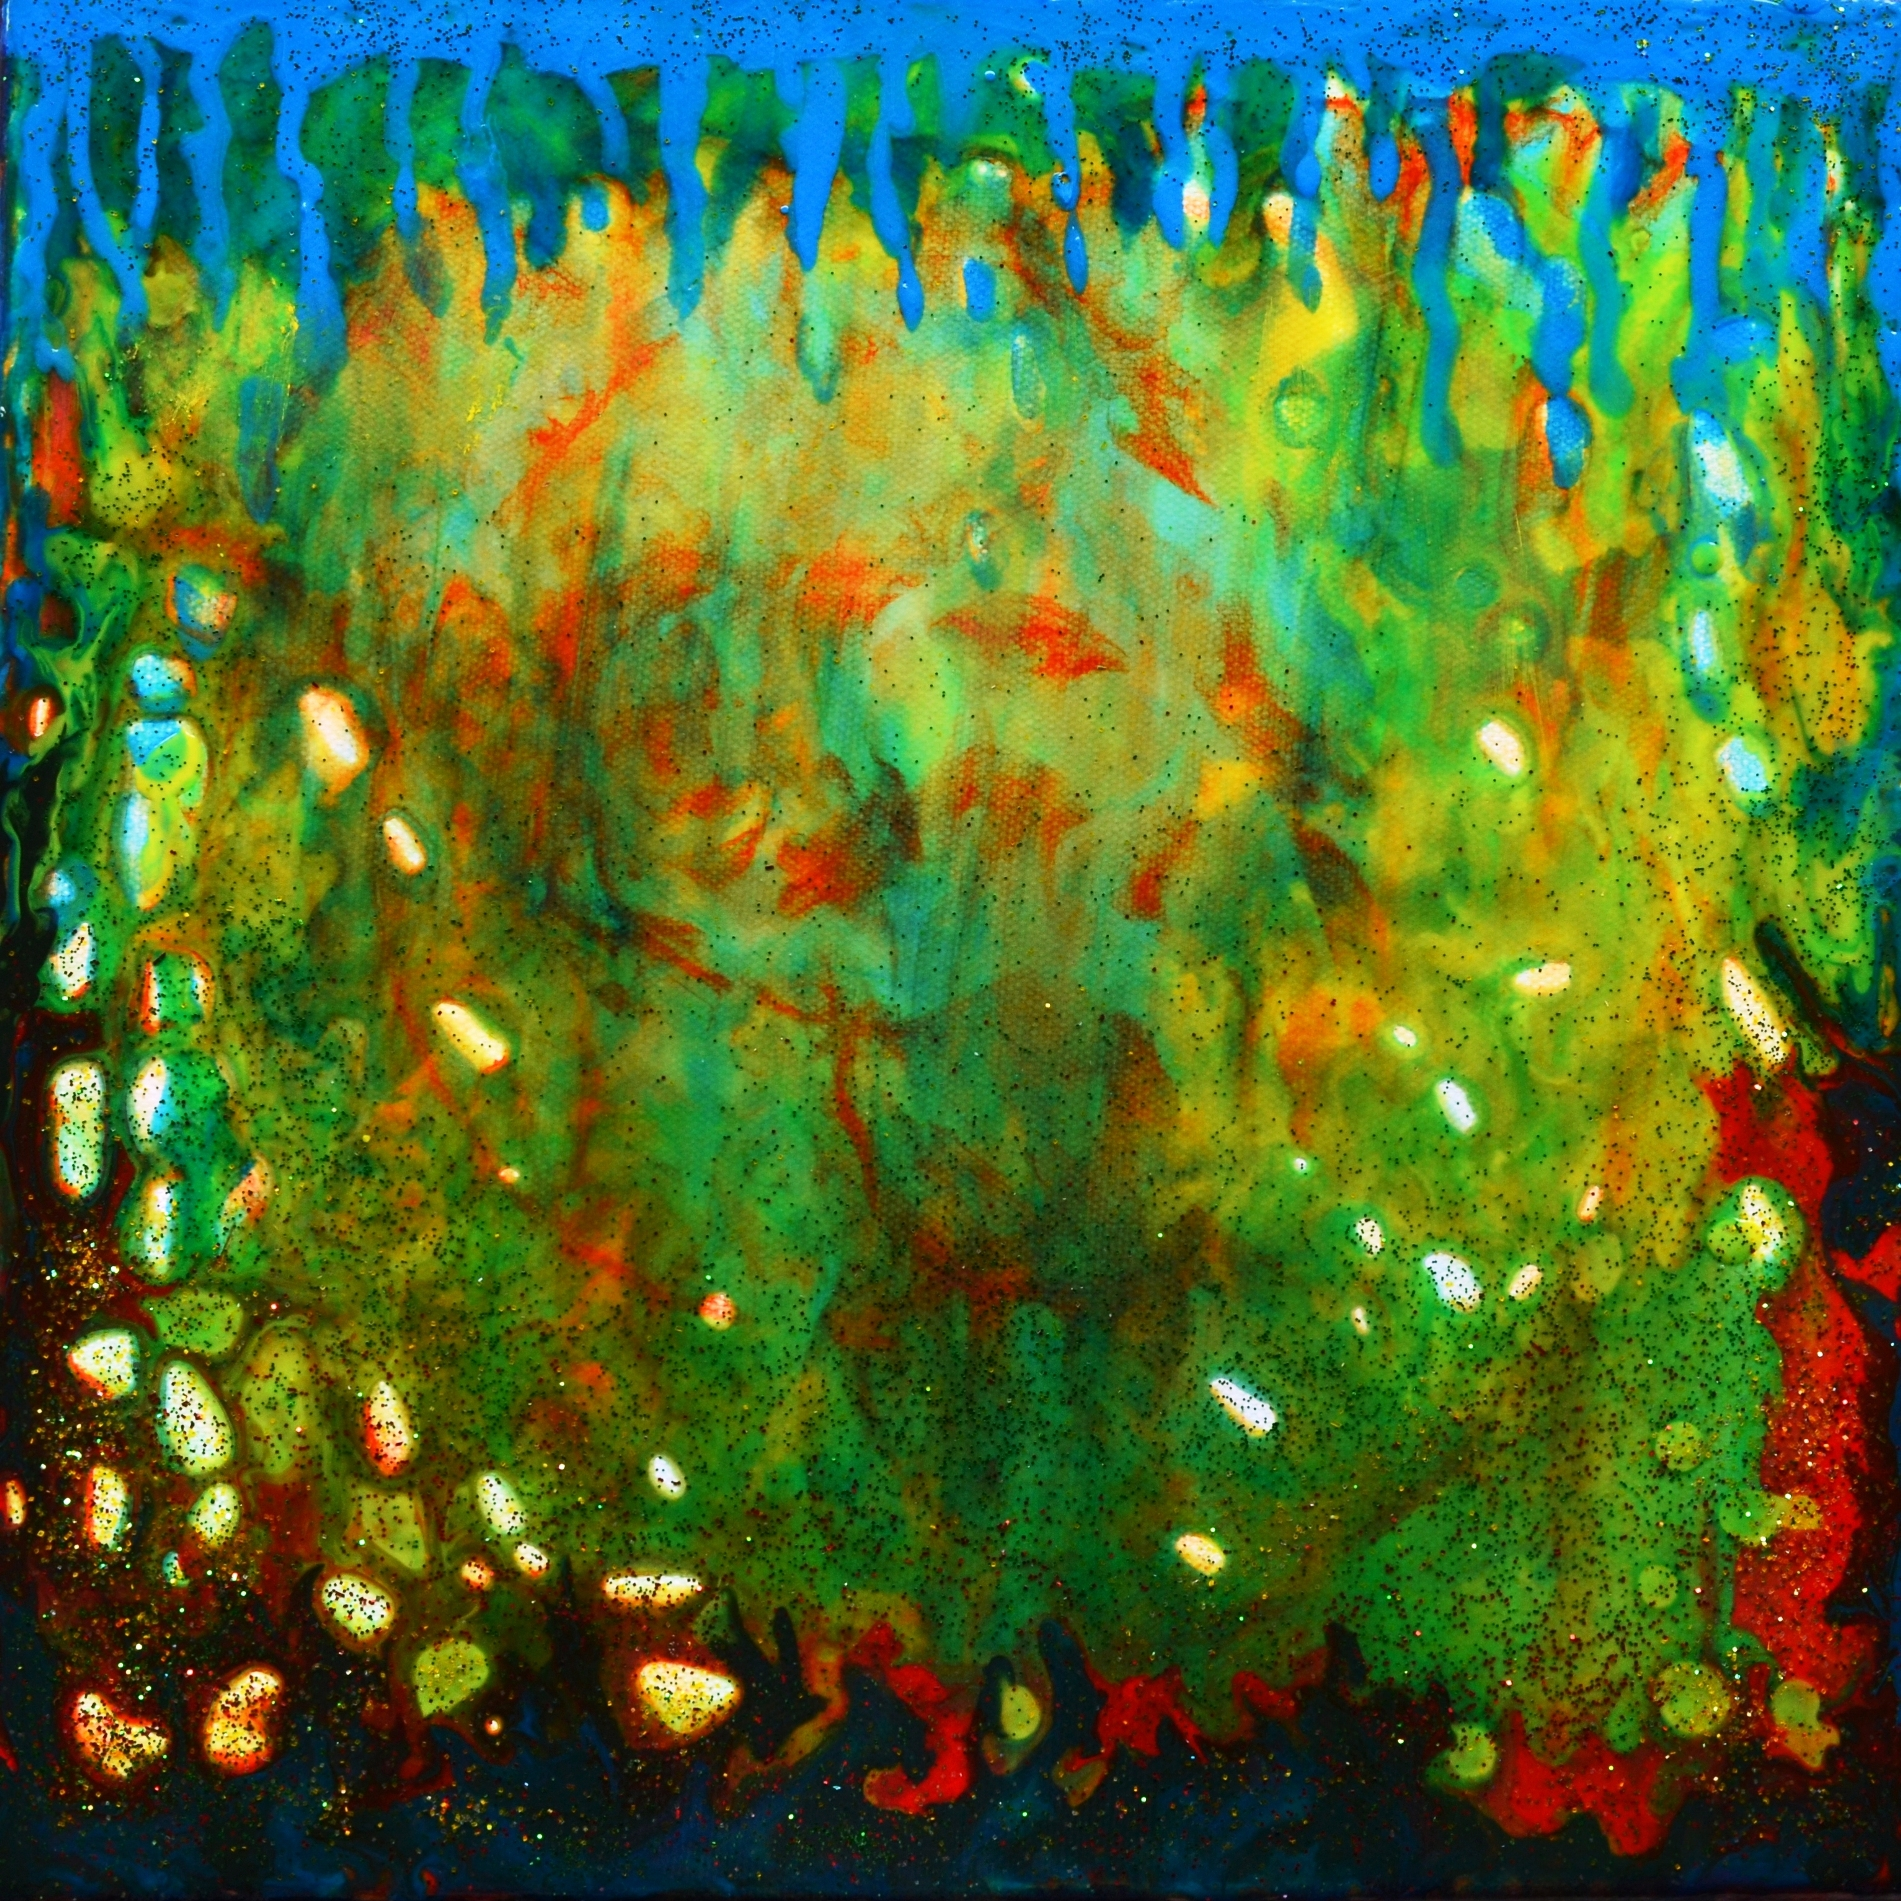 GLITTERING CORAL COLORFUL ABSTRACT PAINTING